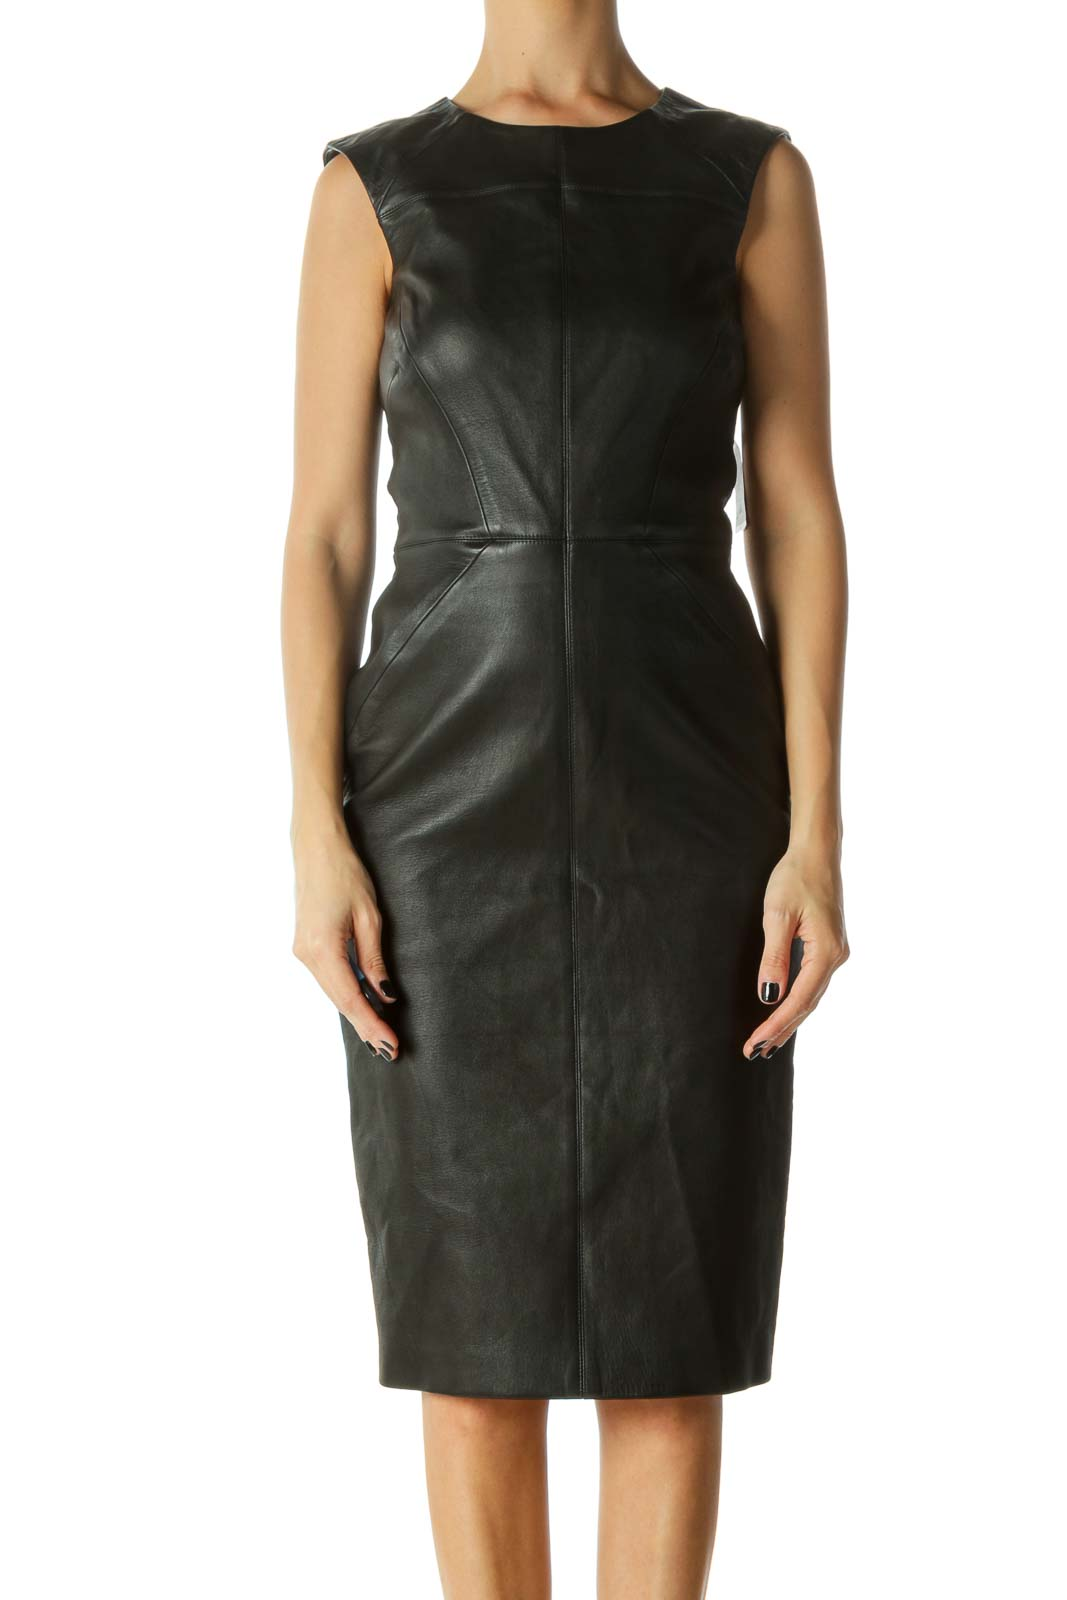 Black Leather Zippered Short Sleeve Work Dress